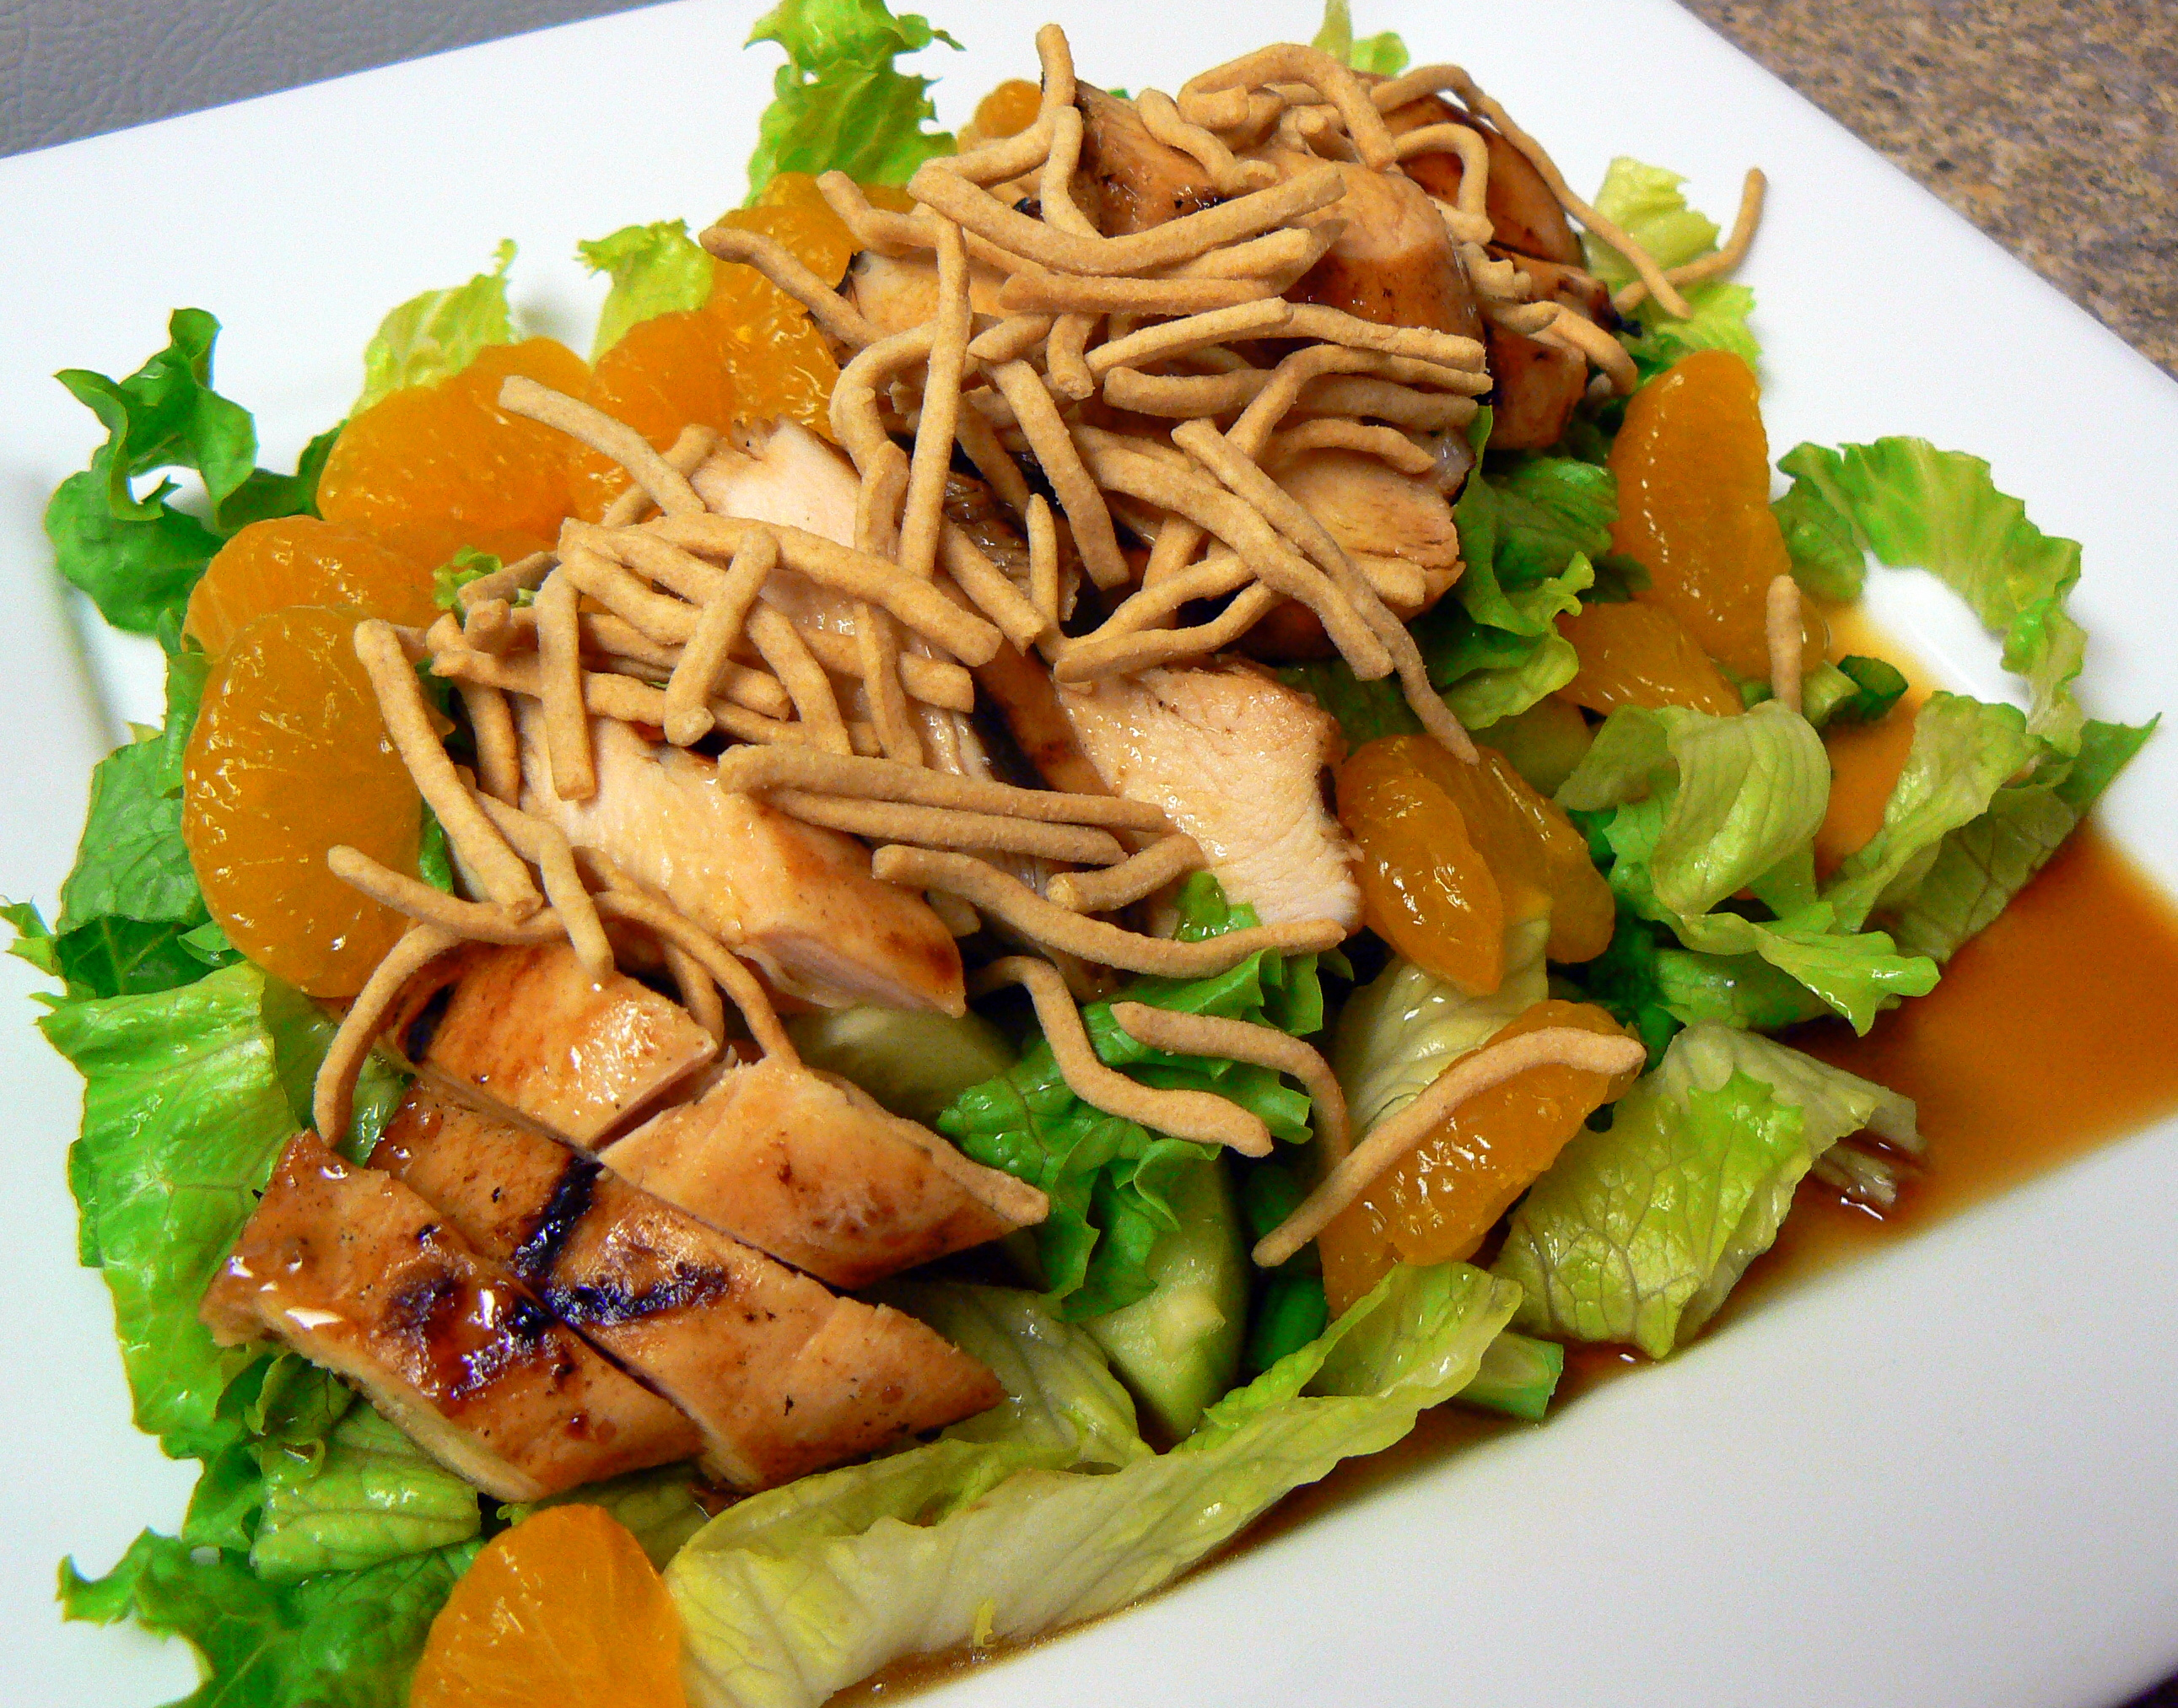 ... noodles, then drizzle with Wish-Bone Light® Asian Sesame Ginger